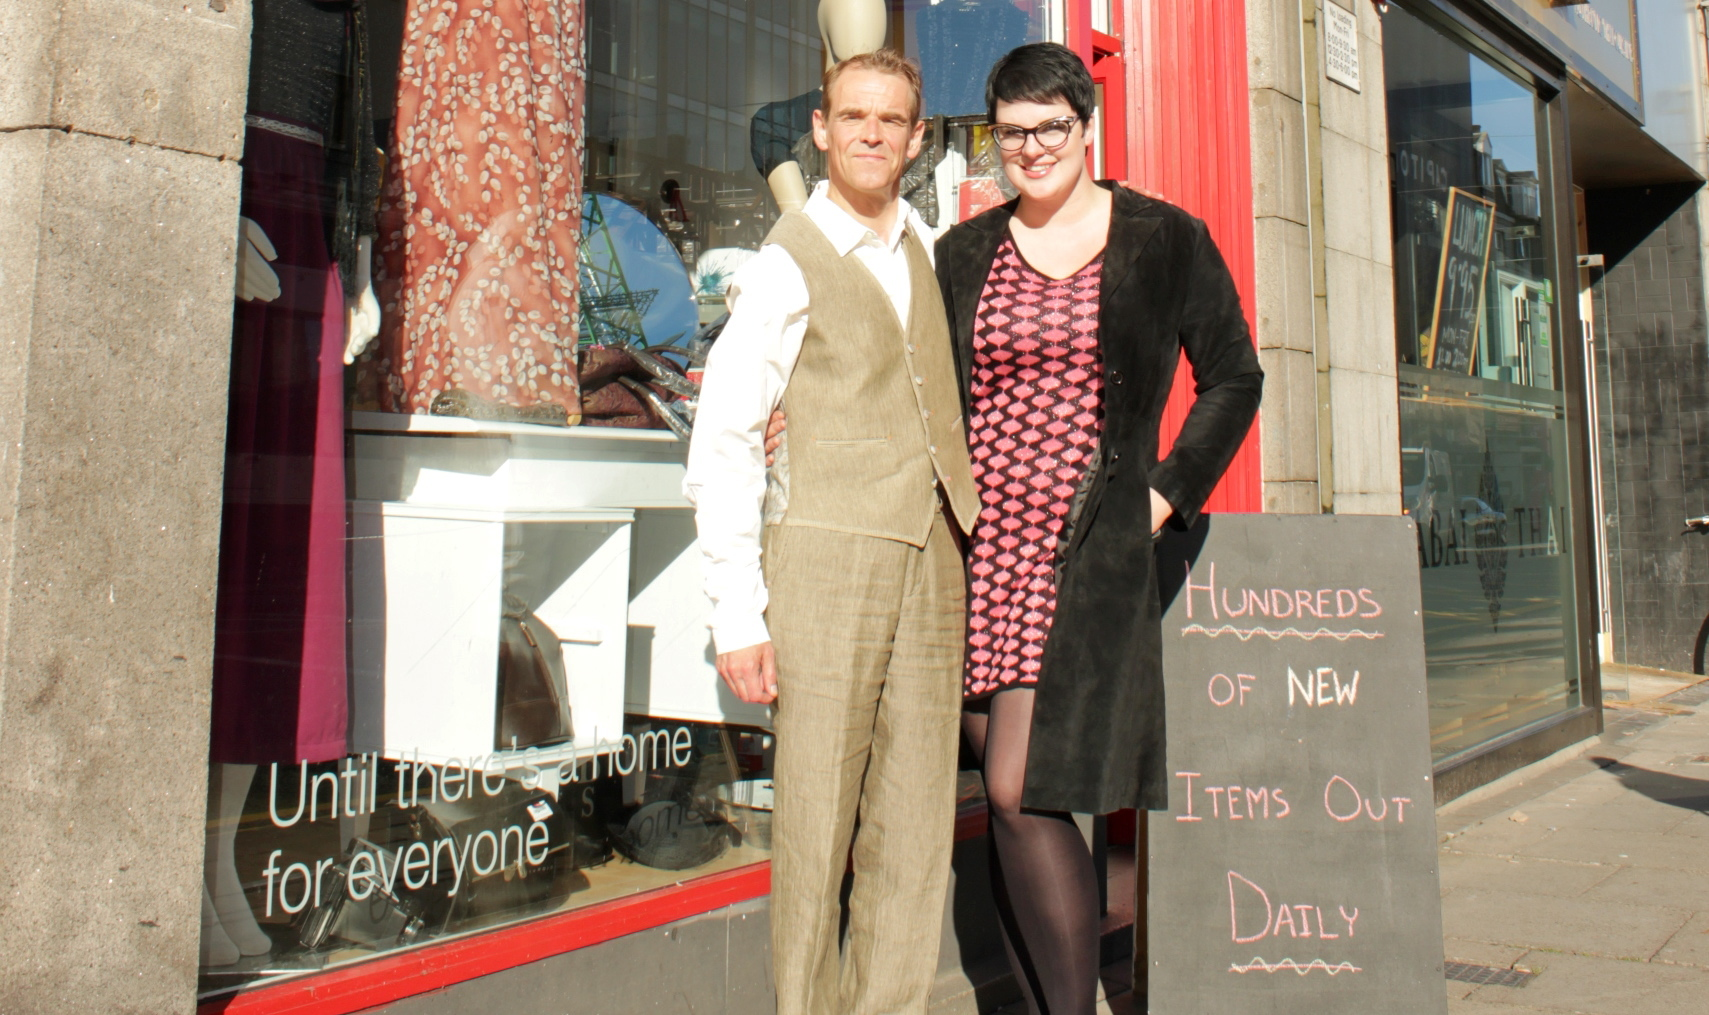 Volunteer Neale Bothwell and shop manager Kylie Cooney